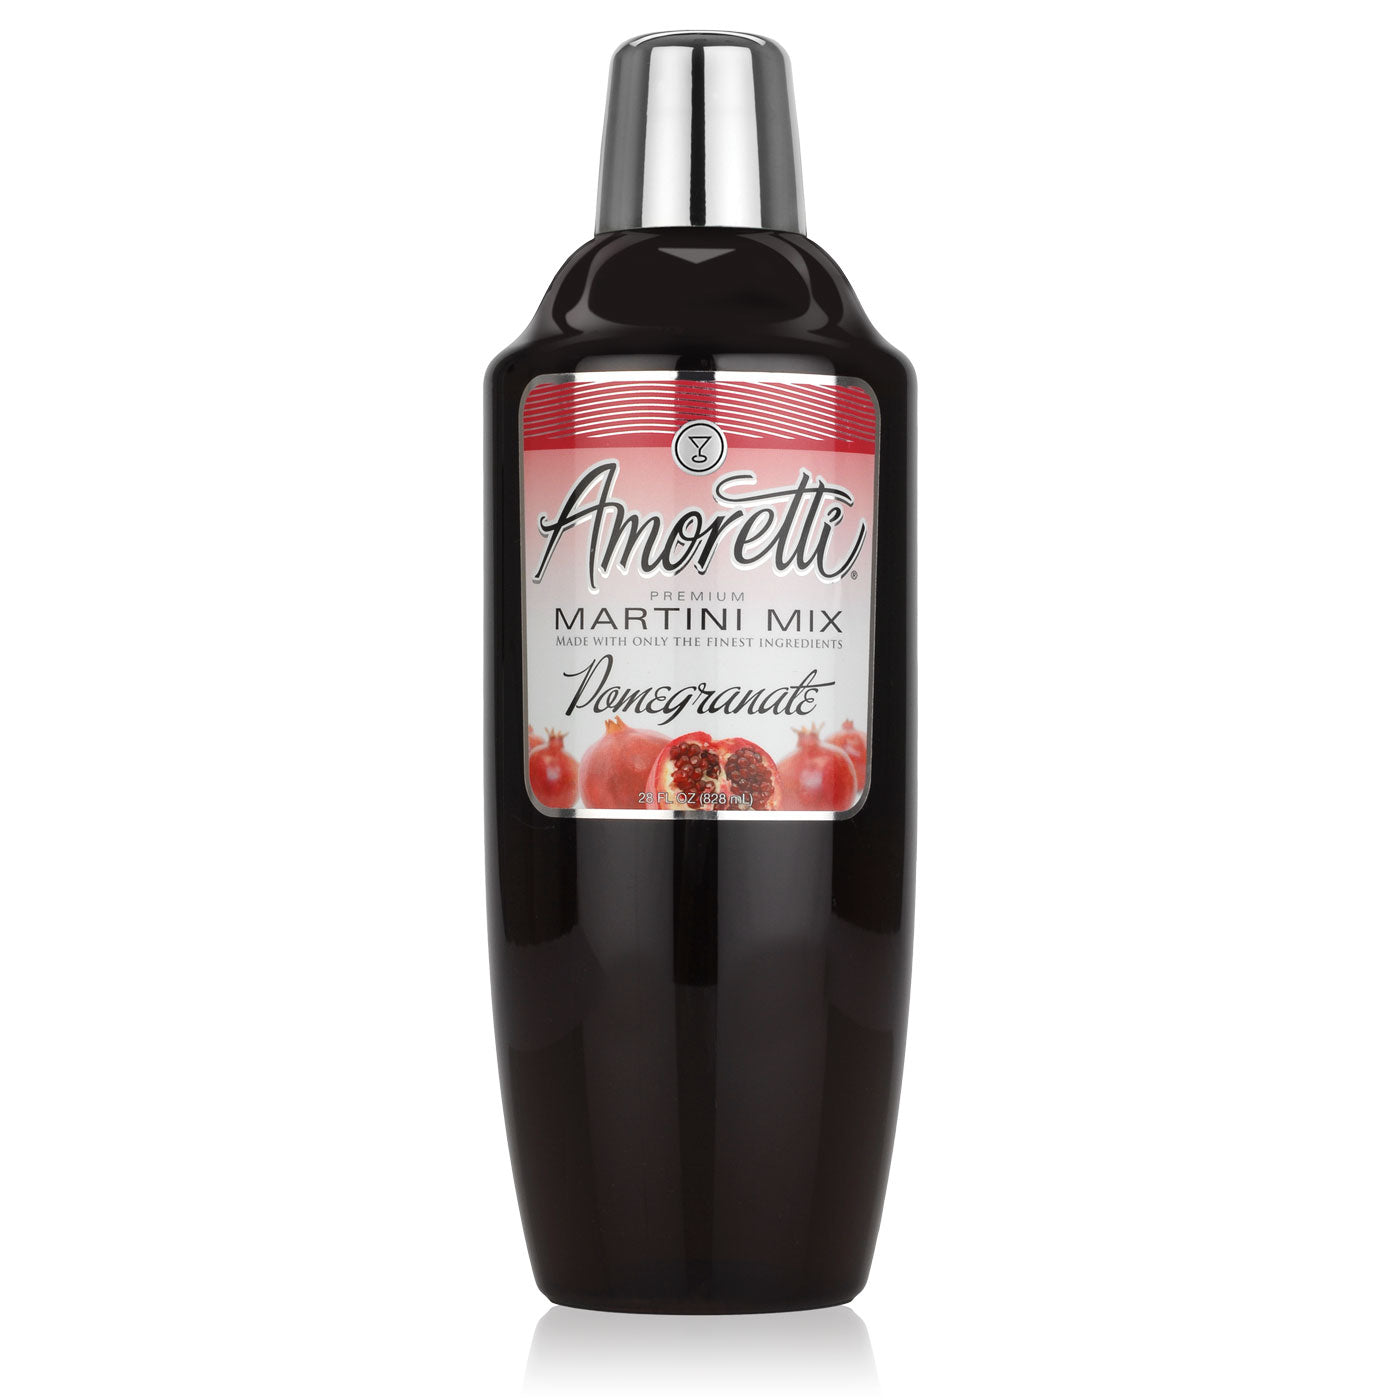 Amoretti Premium Pomegranate Martini Mix